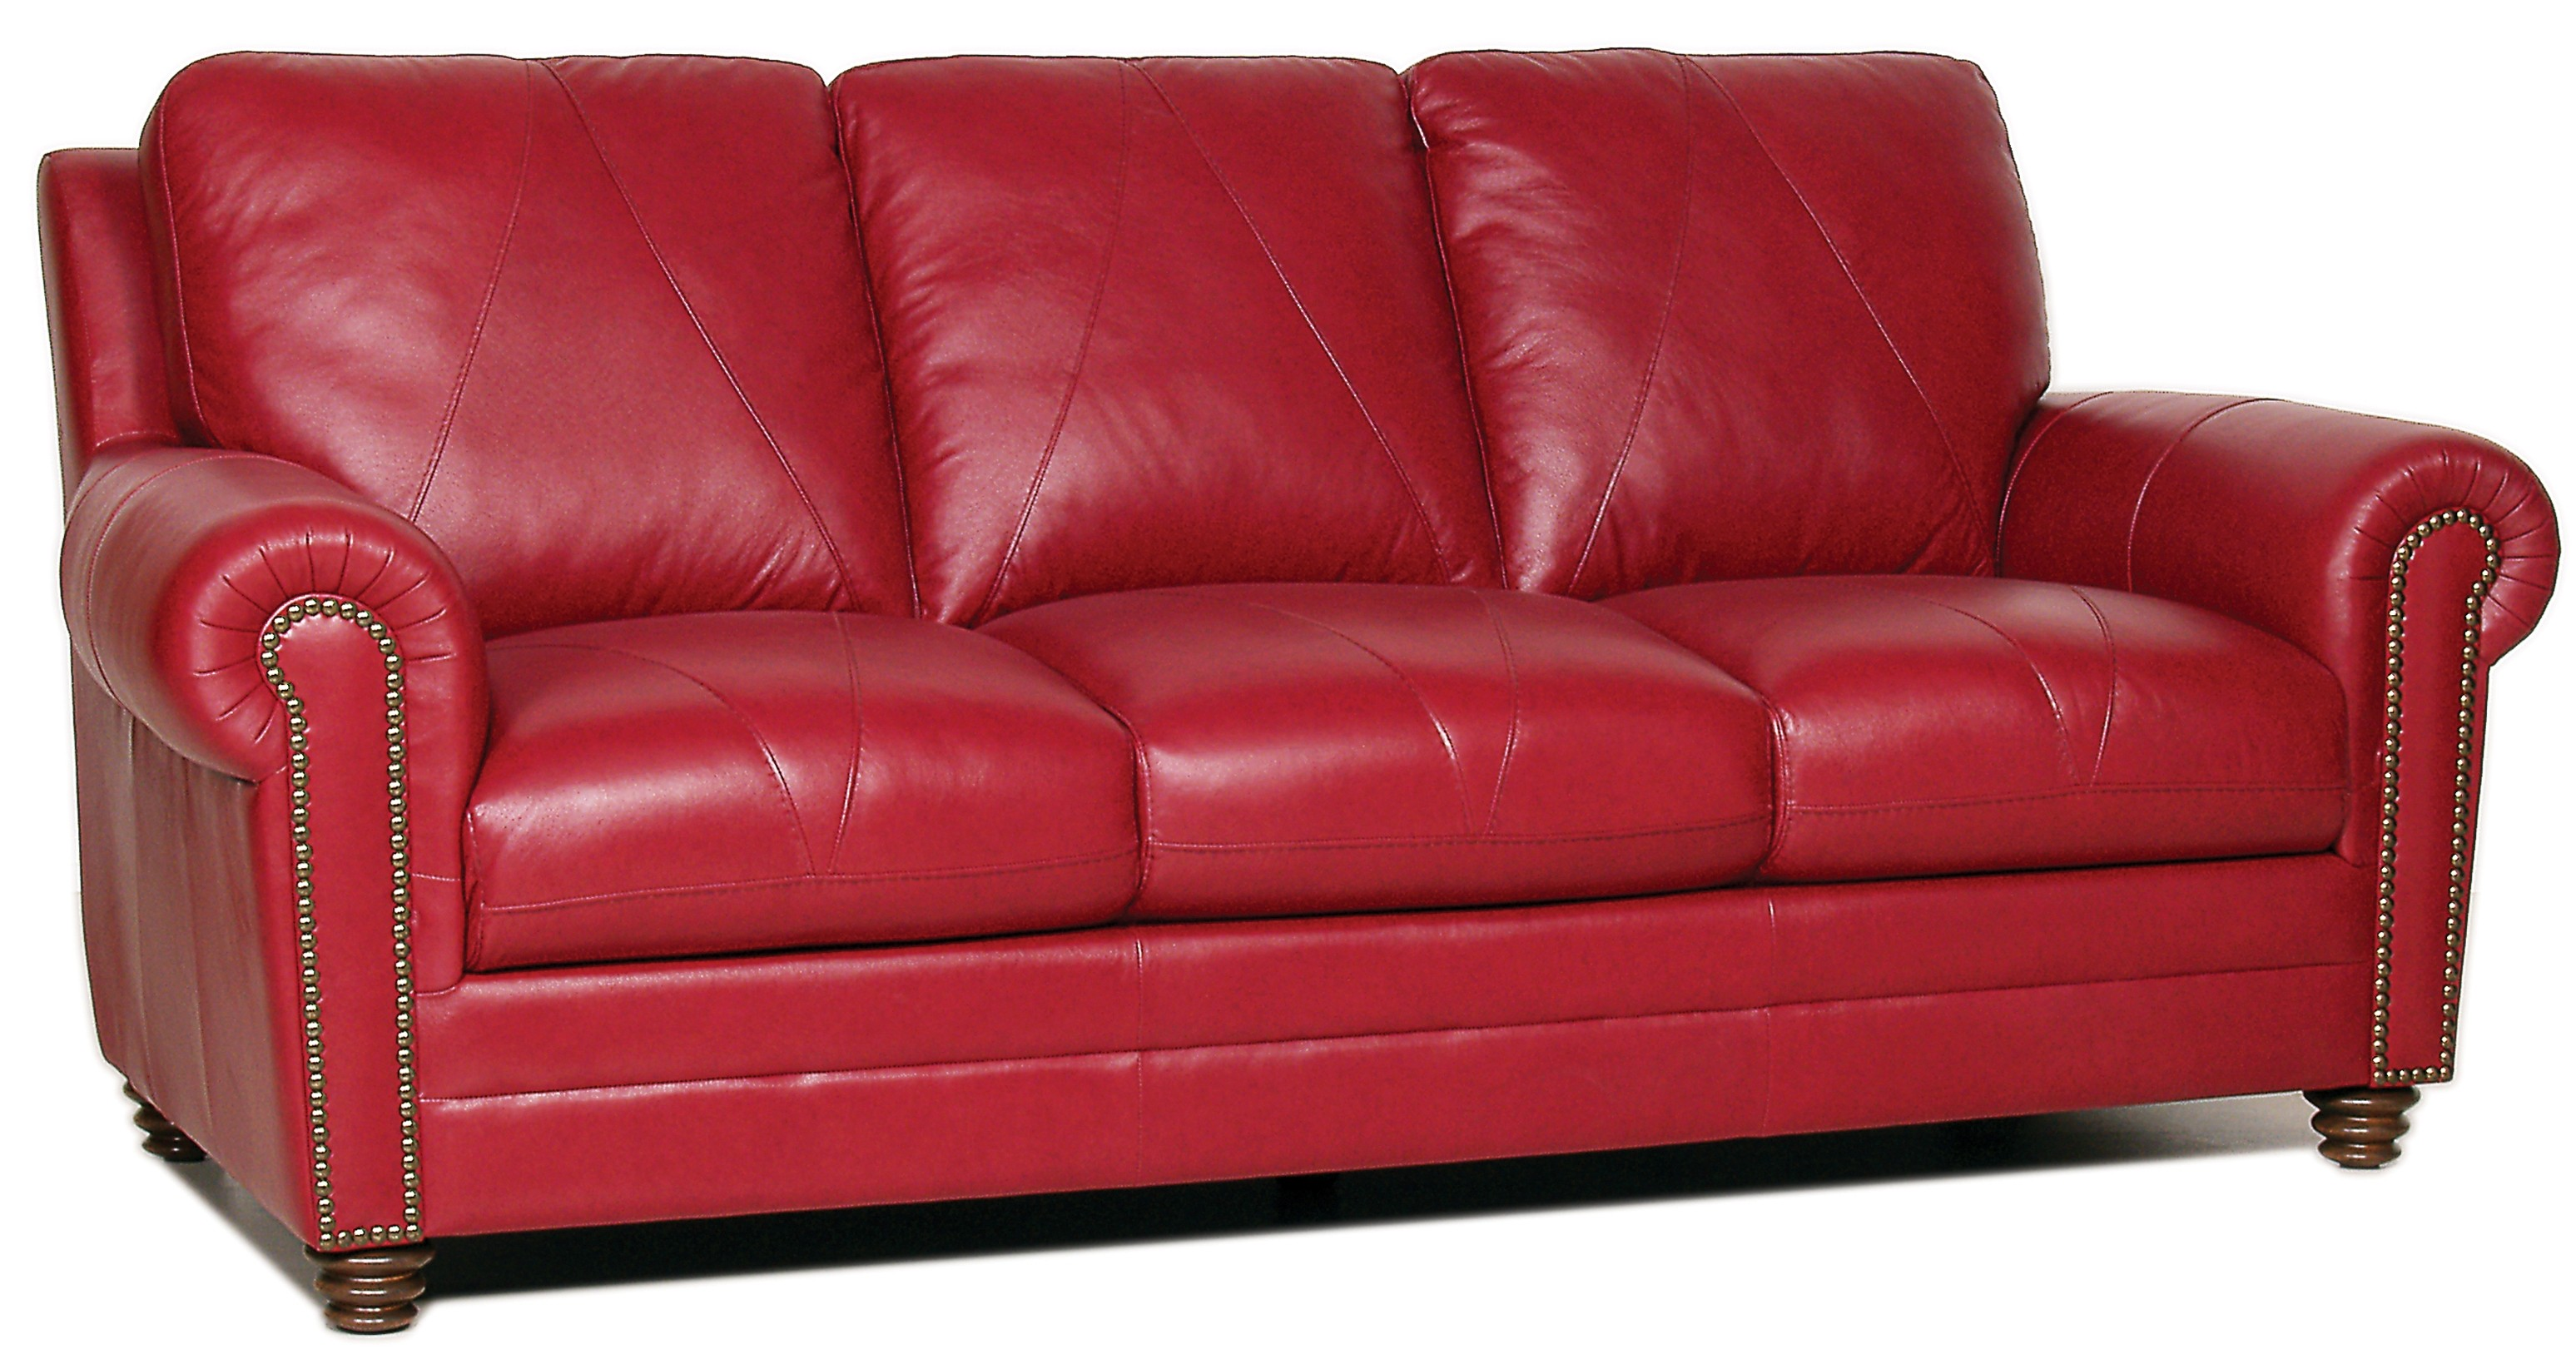 Weston italian leather sofa from luke leather coleman for Italian leather sofa